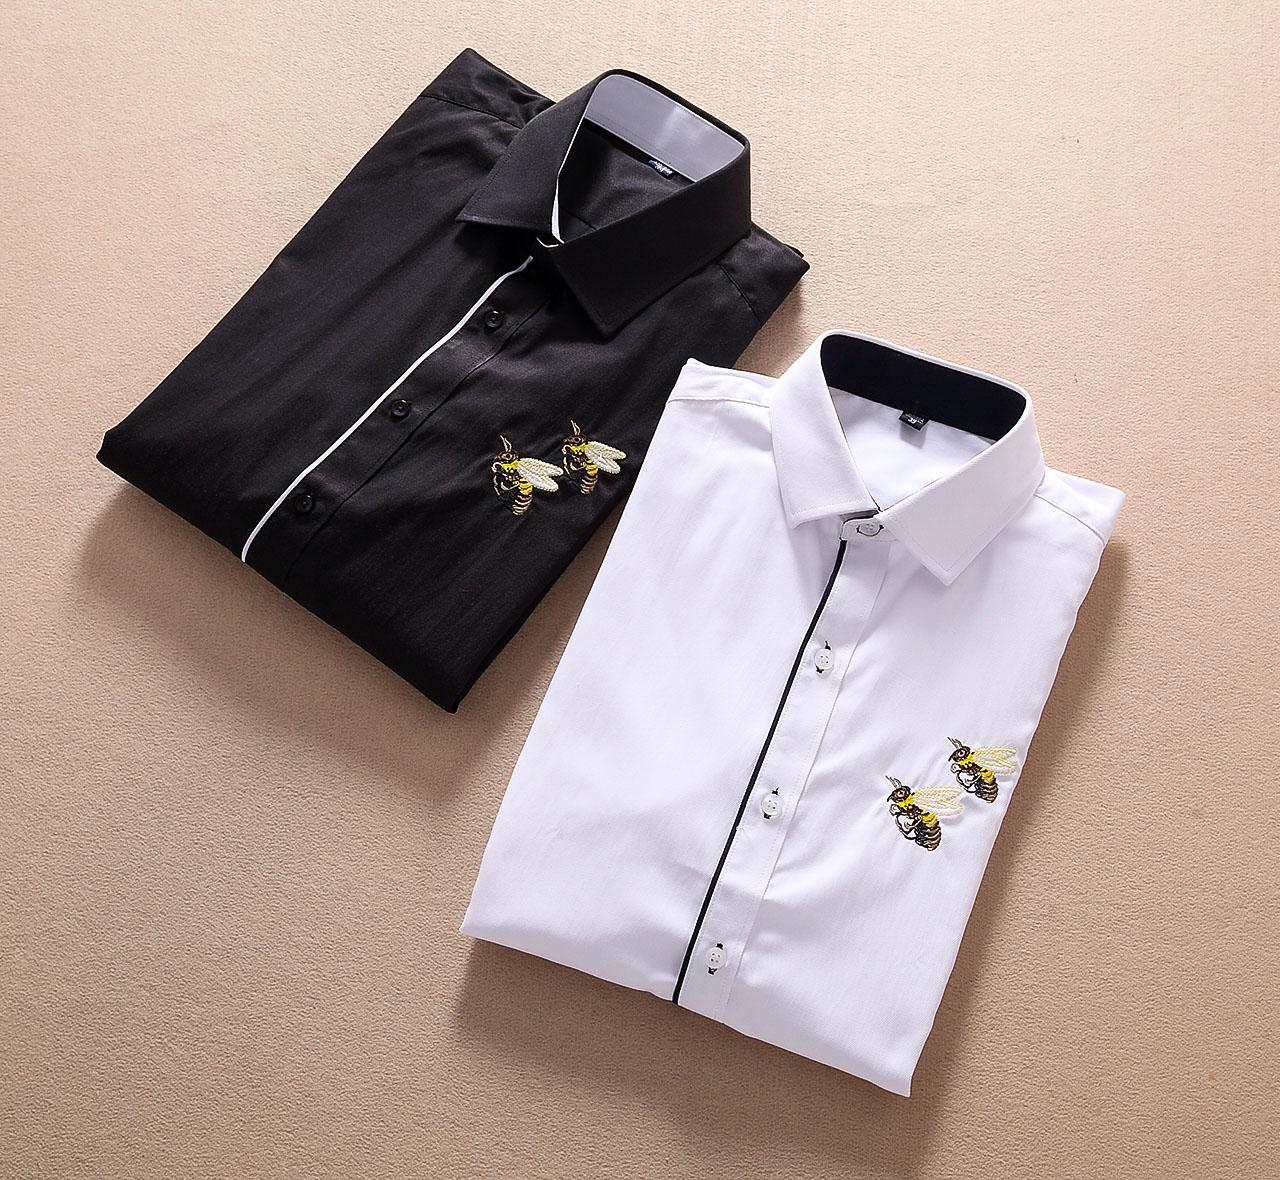 Fashion-Brand Bees design Long Sleeve Men's Casual Shirts G122 Italy style Lapel dress tees Embroidery Tiger snakes T-Shirt